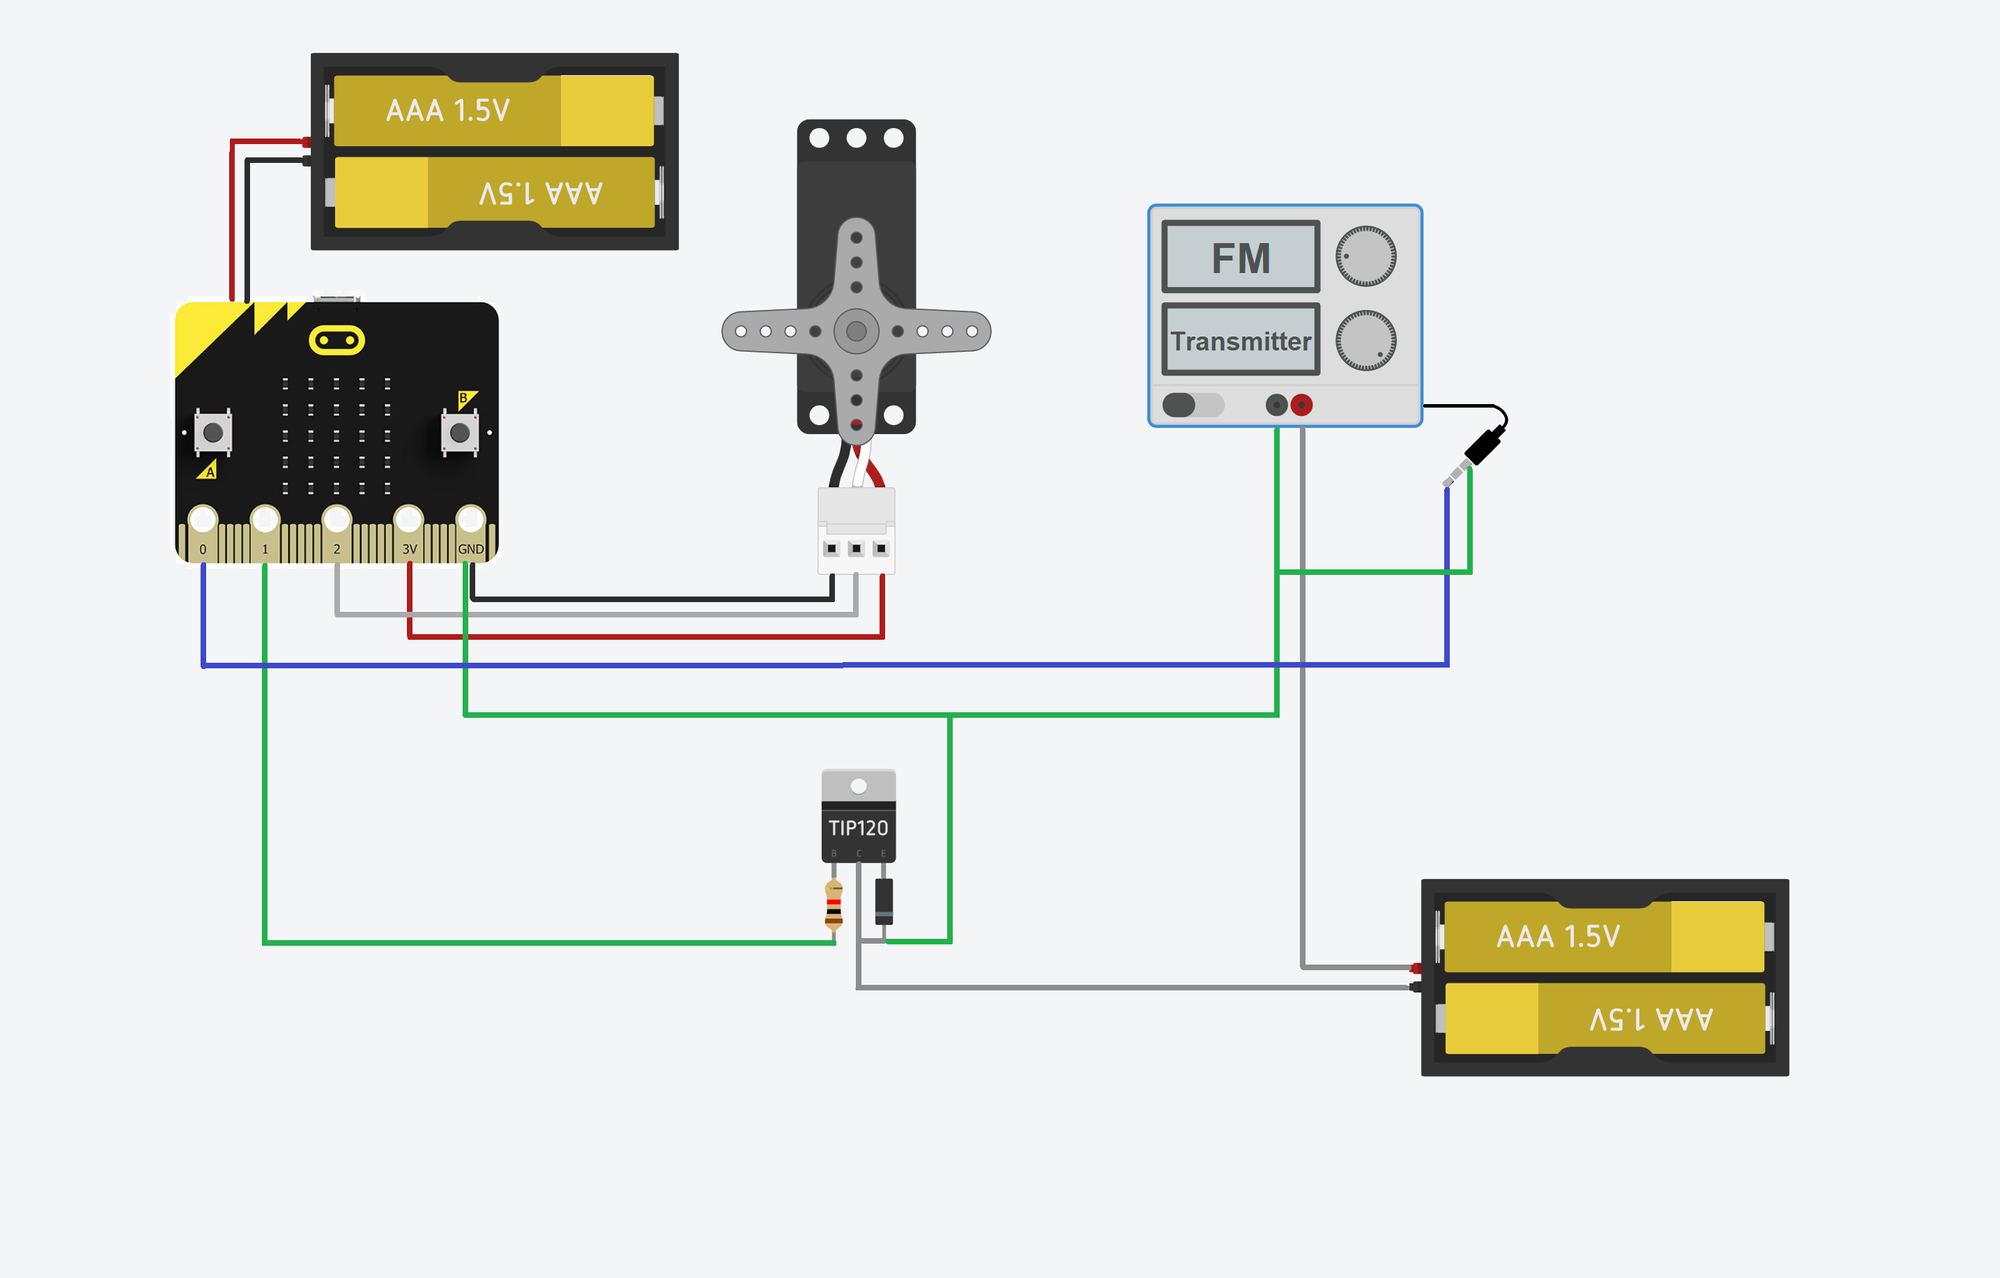 With a great many connections comes a great mass of wires. The housing for the Pirate Box had to be big enough to accommodate not only its components but also the mass of wires.